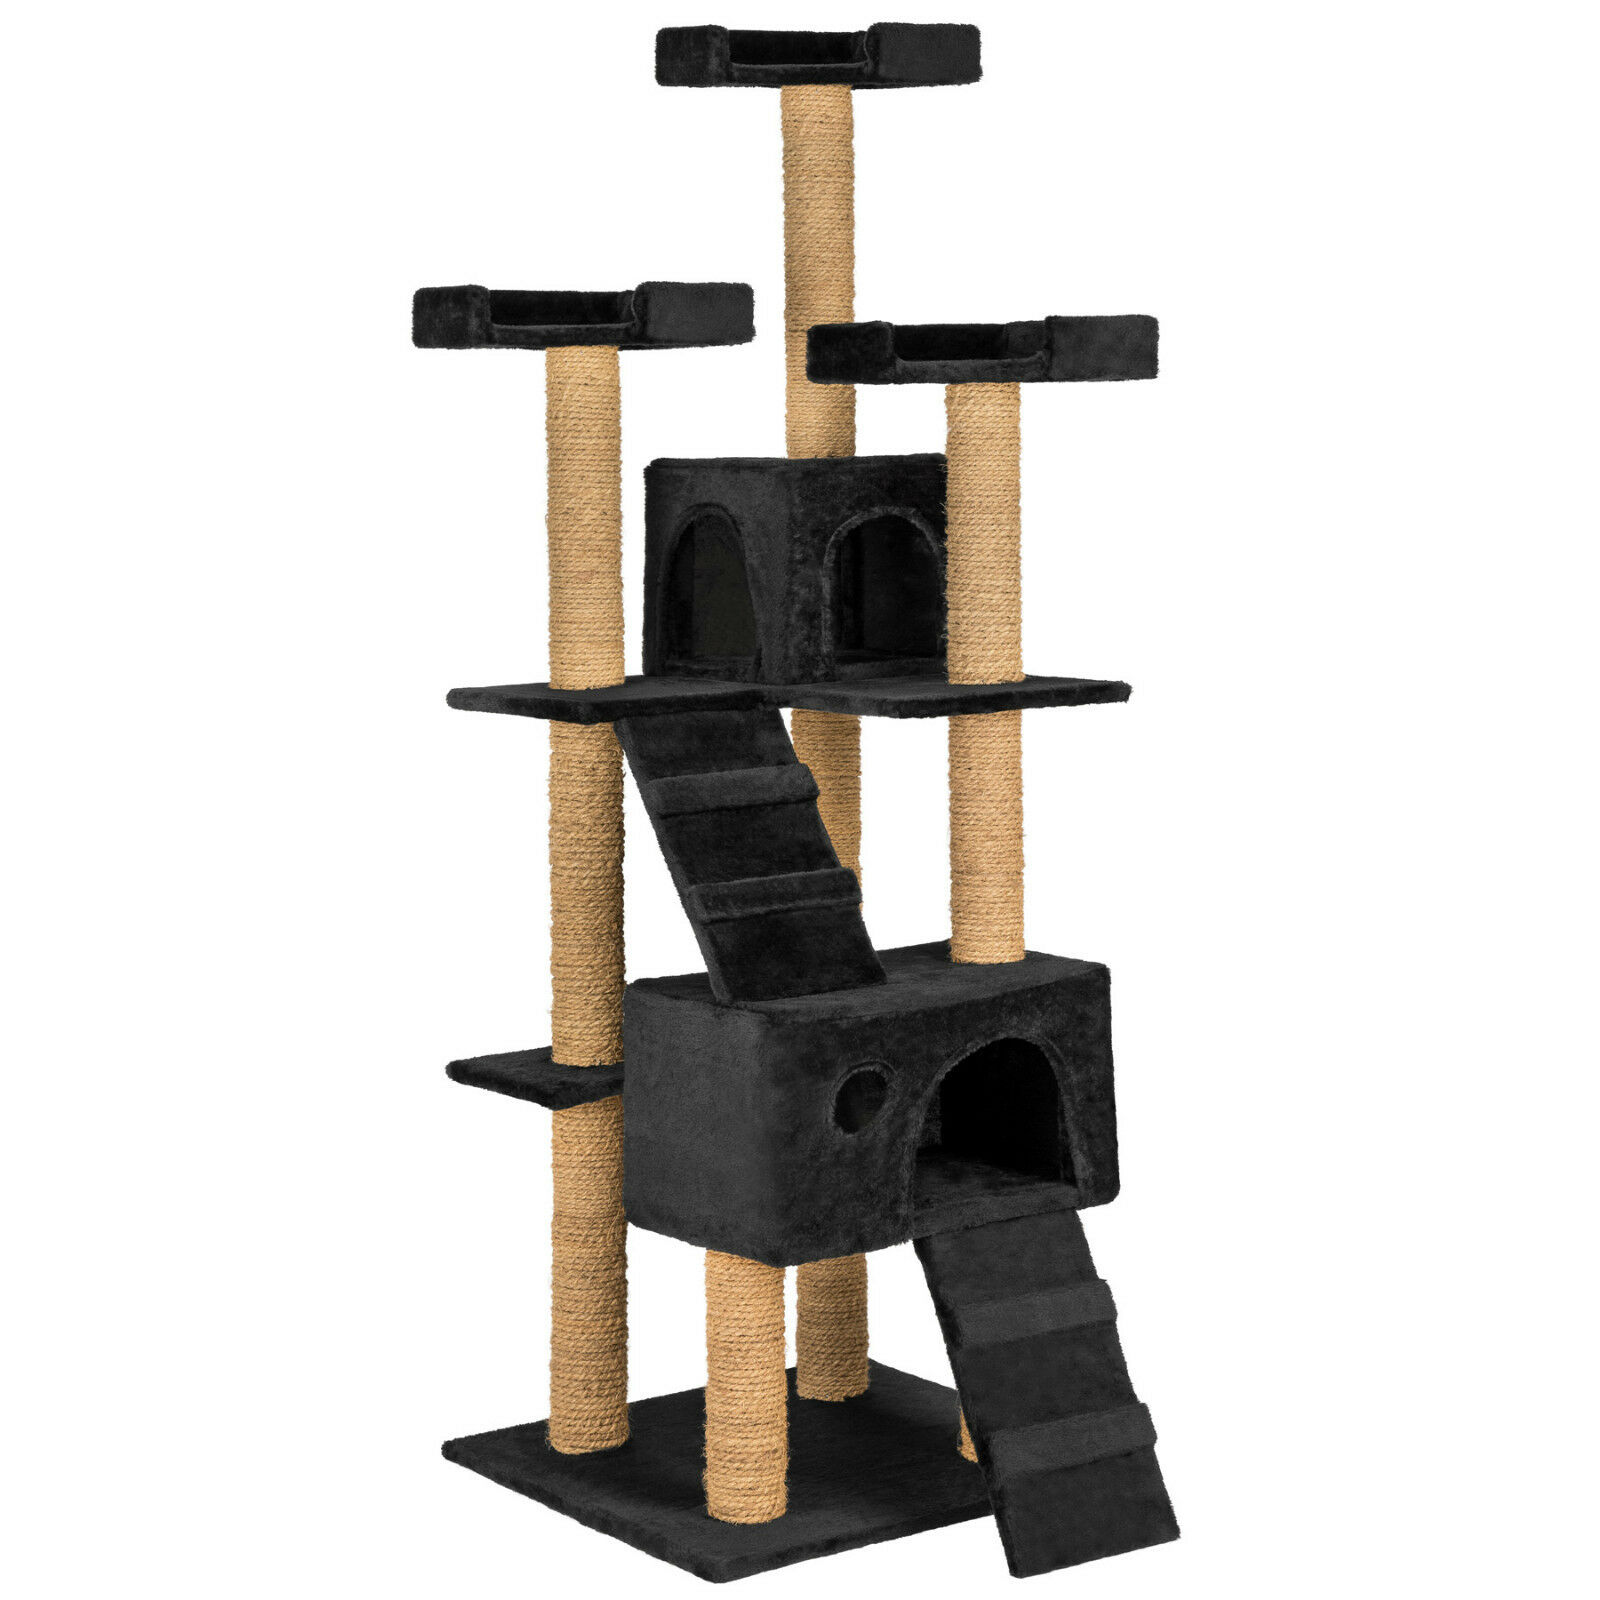 kratzbaum baum f r katzen kletterbaum katzenbaum katzenkratzbaum b ware eur 29 99 picclick at. Black Bedroom Furniture Sets. Home Design Ideas